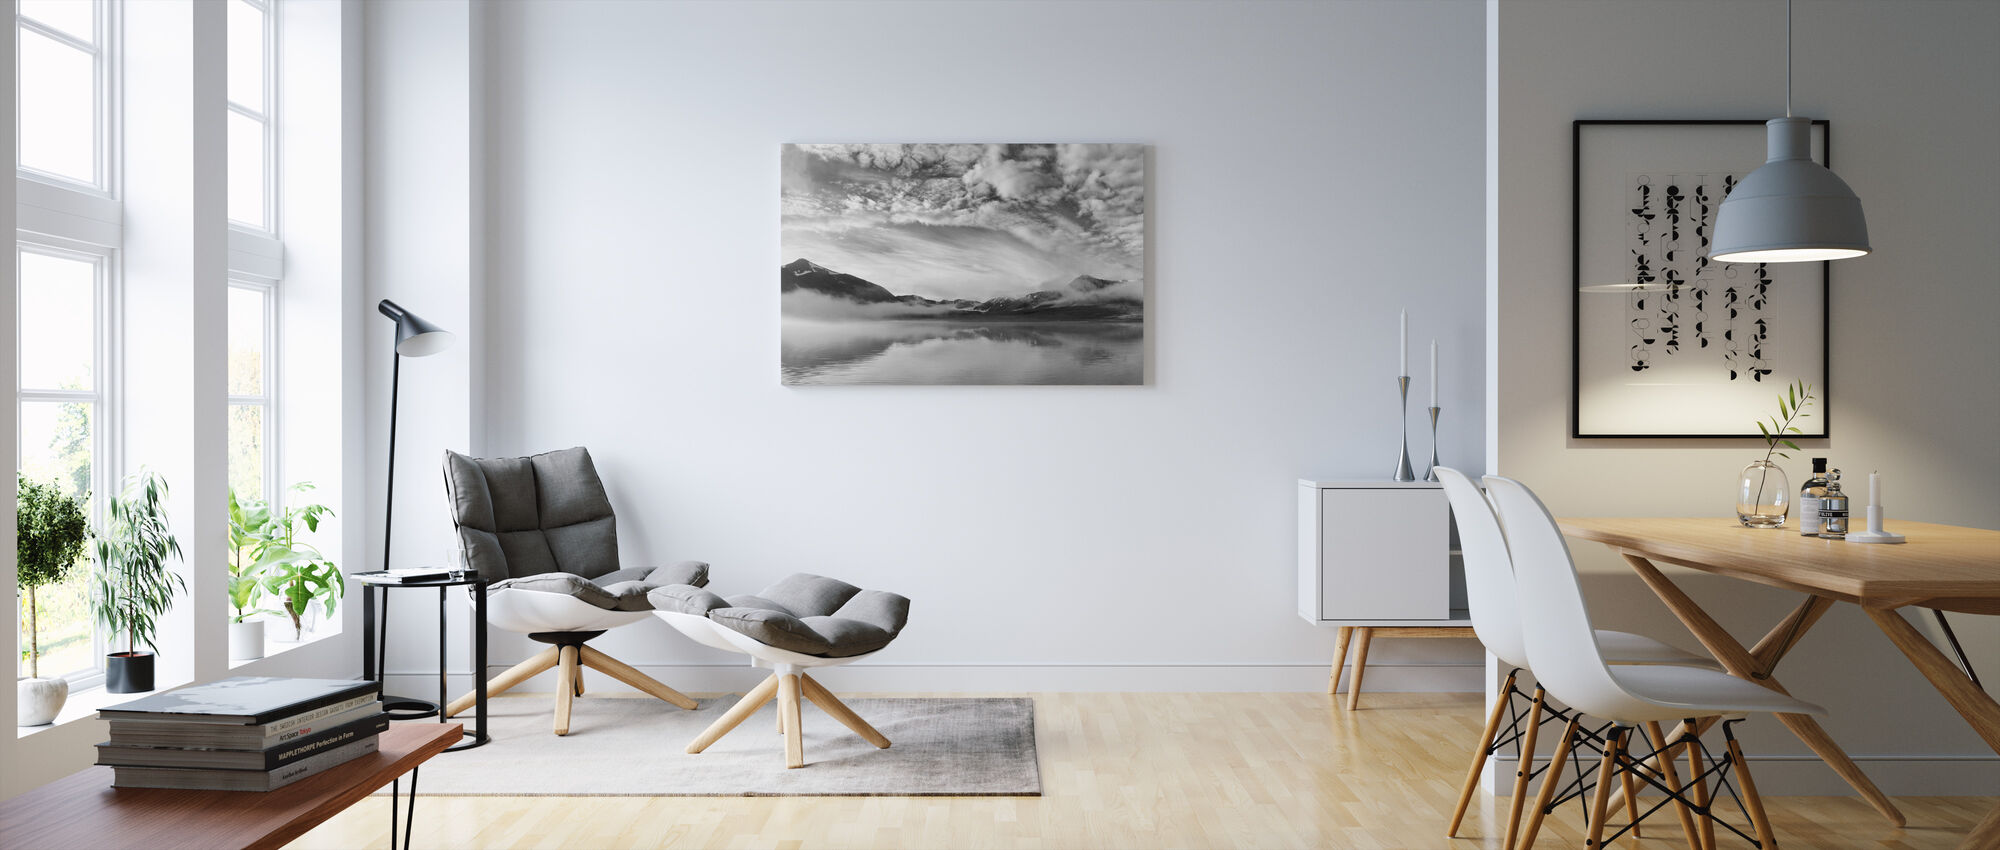 Soft Morning Mist - Canvas print - Living Room